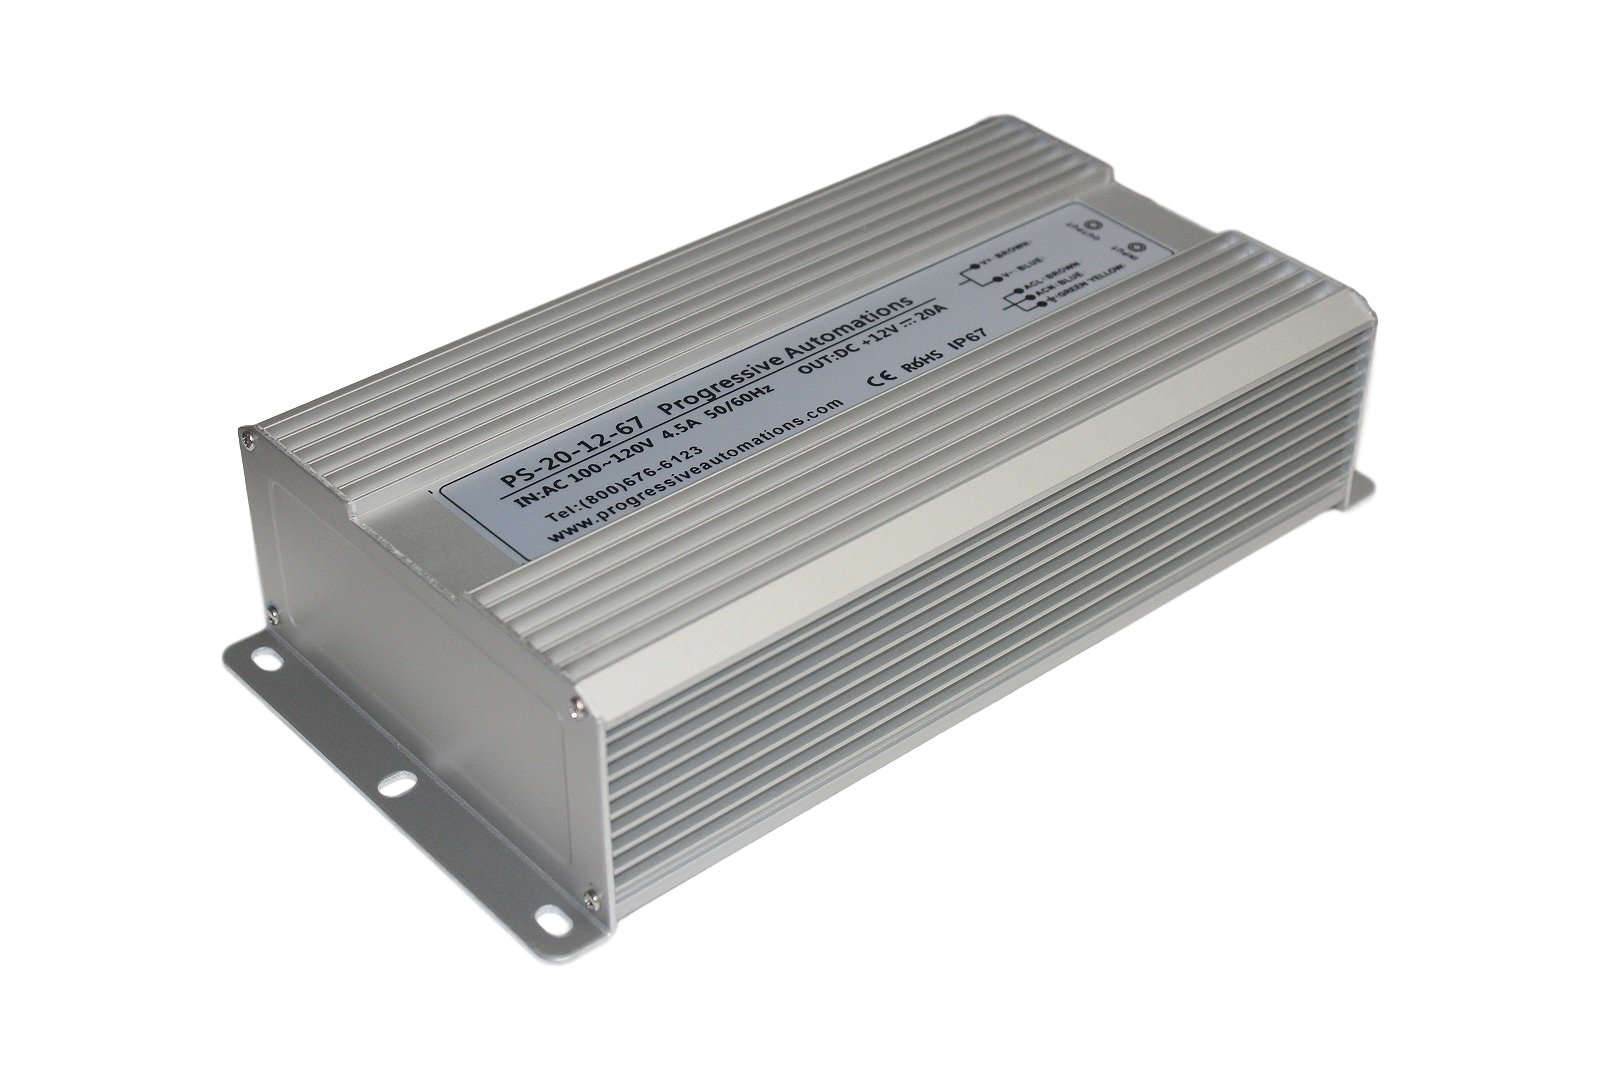 Progressive Automations PS-20-12-67 Power Supply